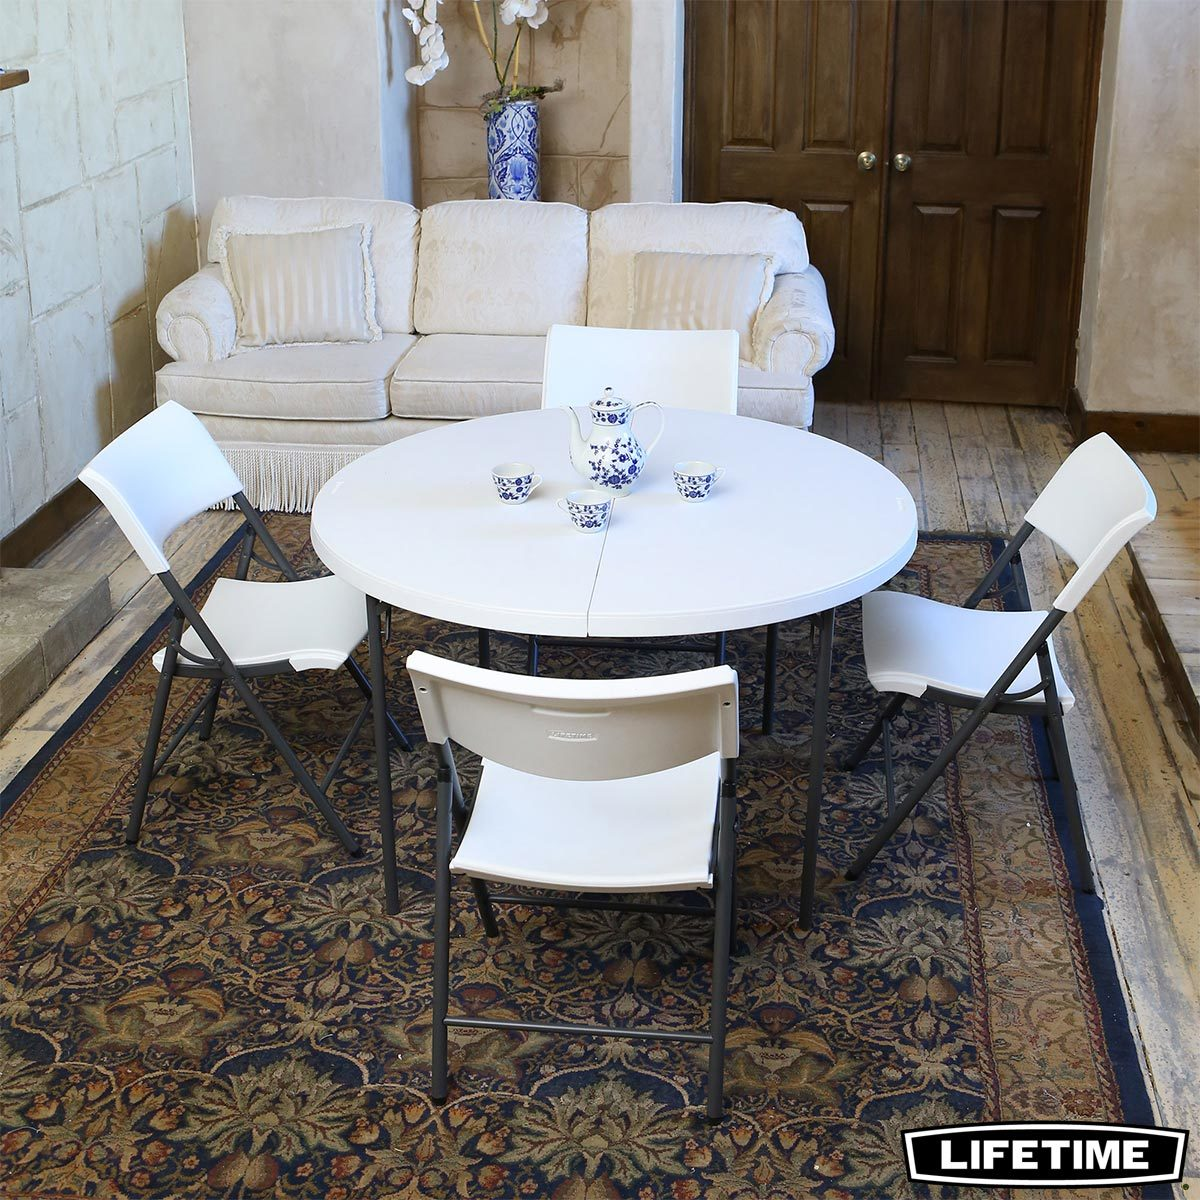 Costco Tables And Chairs Lifetime 48 4ft Round Commercial Table With 4 Chairs Costco Uk